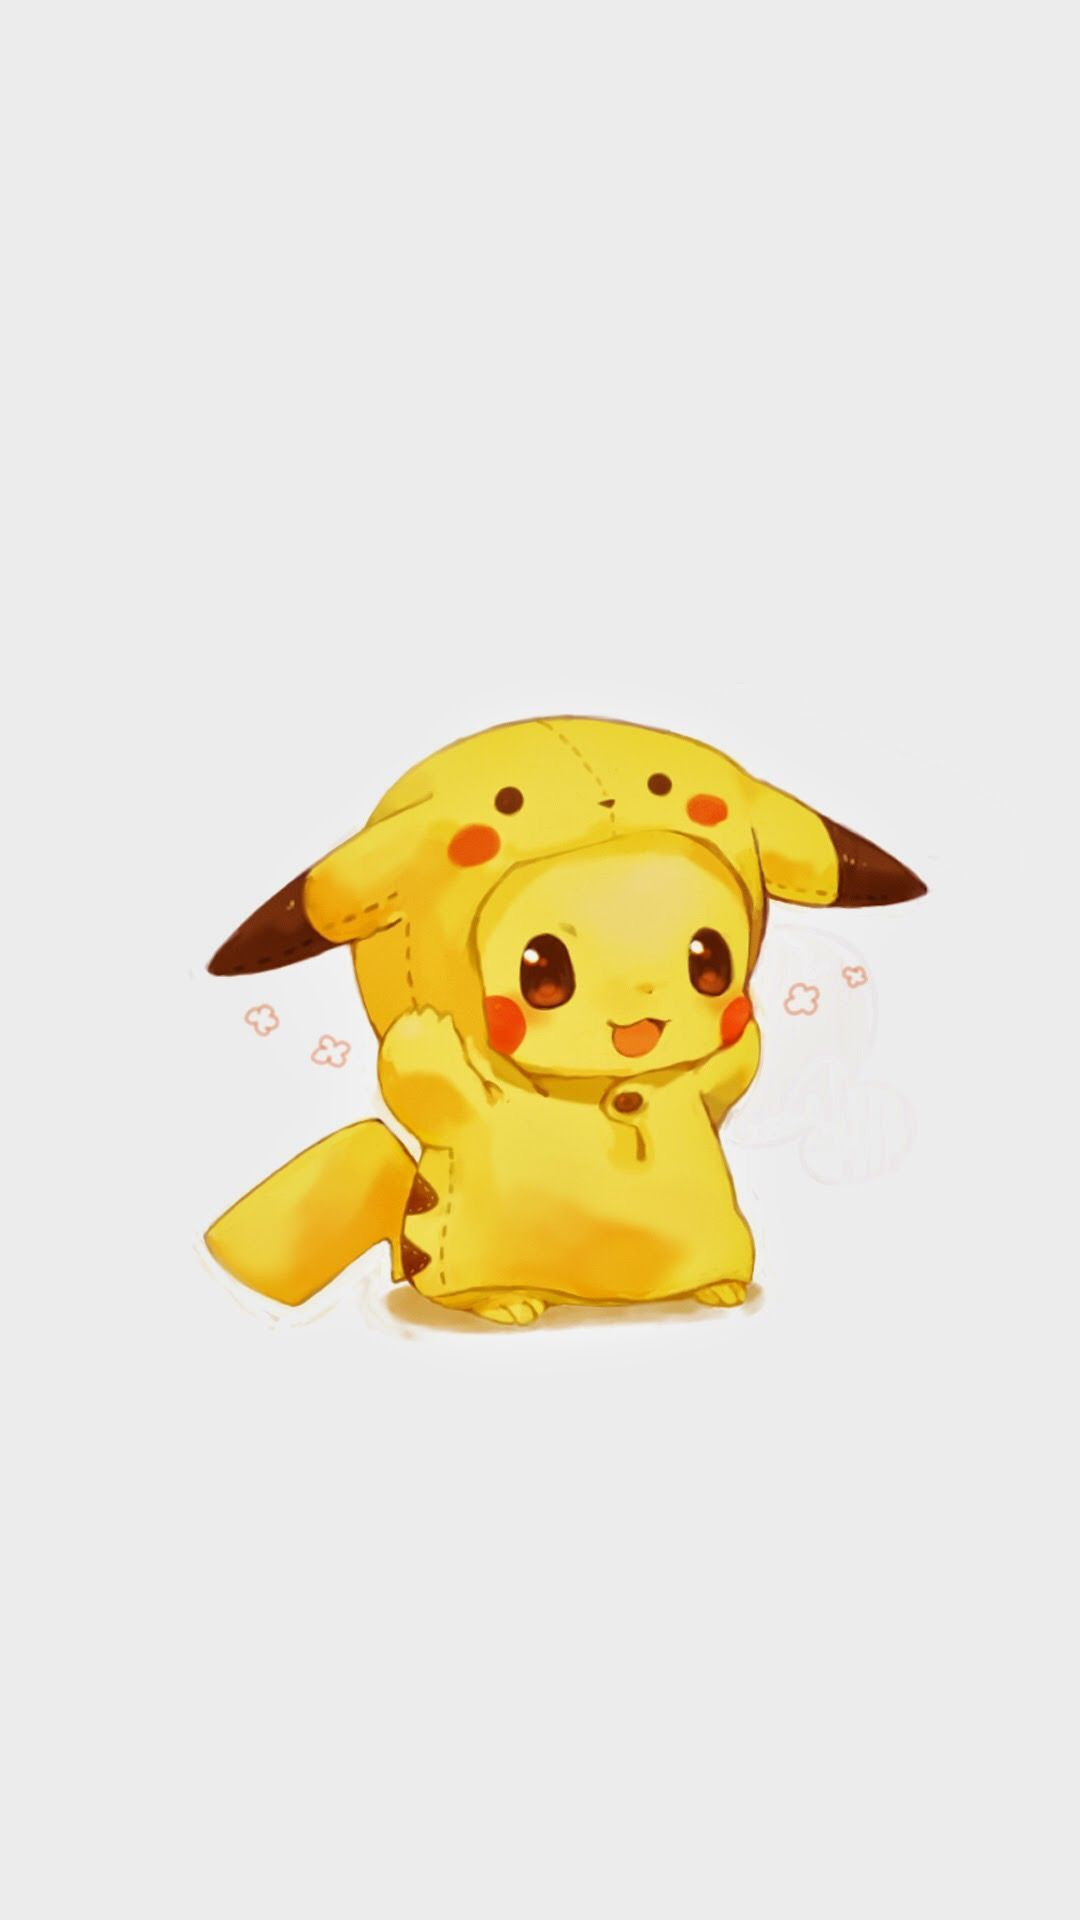 1080x1920 Tap image for more funny cute Pikachu wallpaper! Pikachu - @mobile9 ...